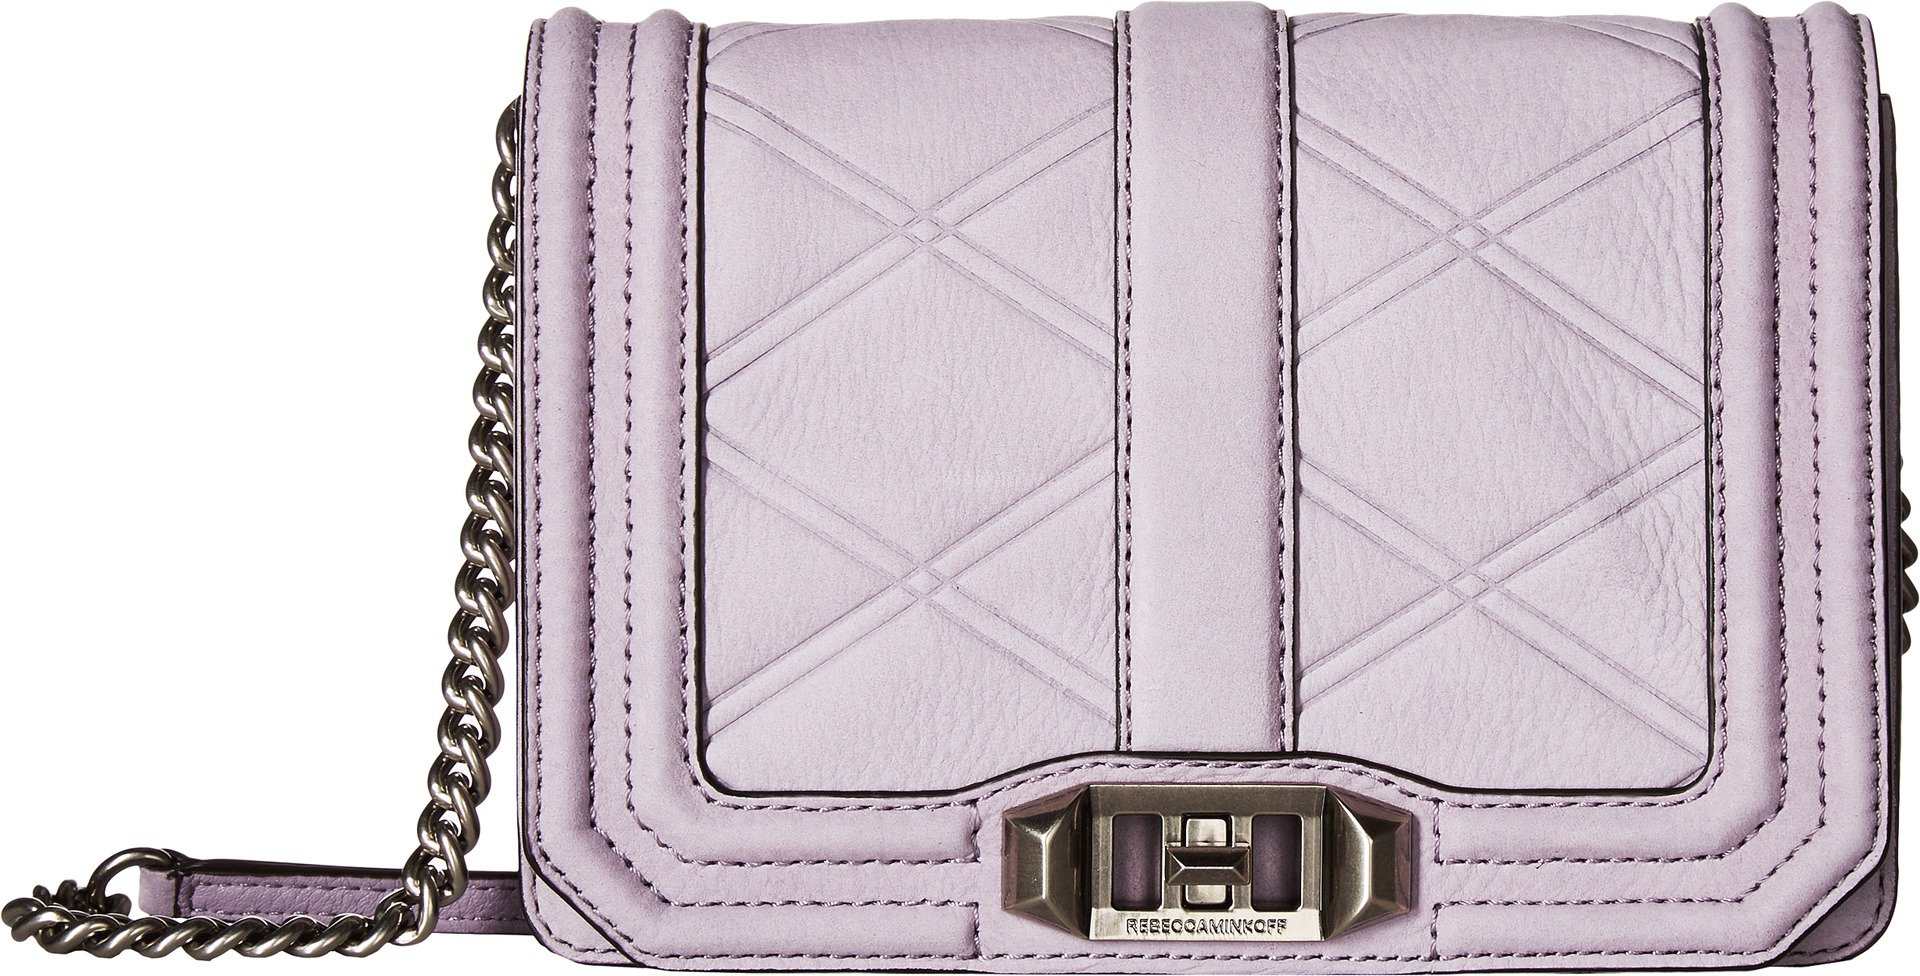 Rebecca Minkoff Women's Small Love Crossbody Violino One Size